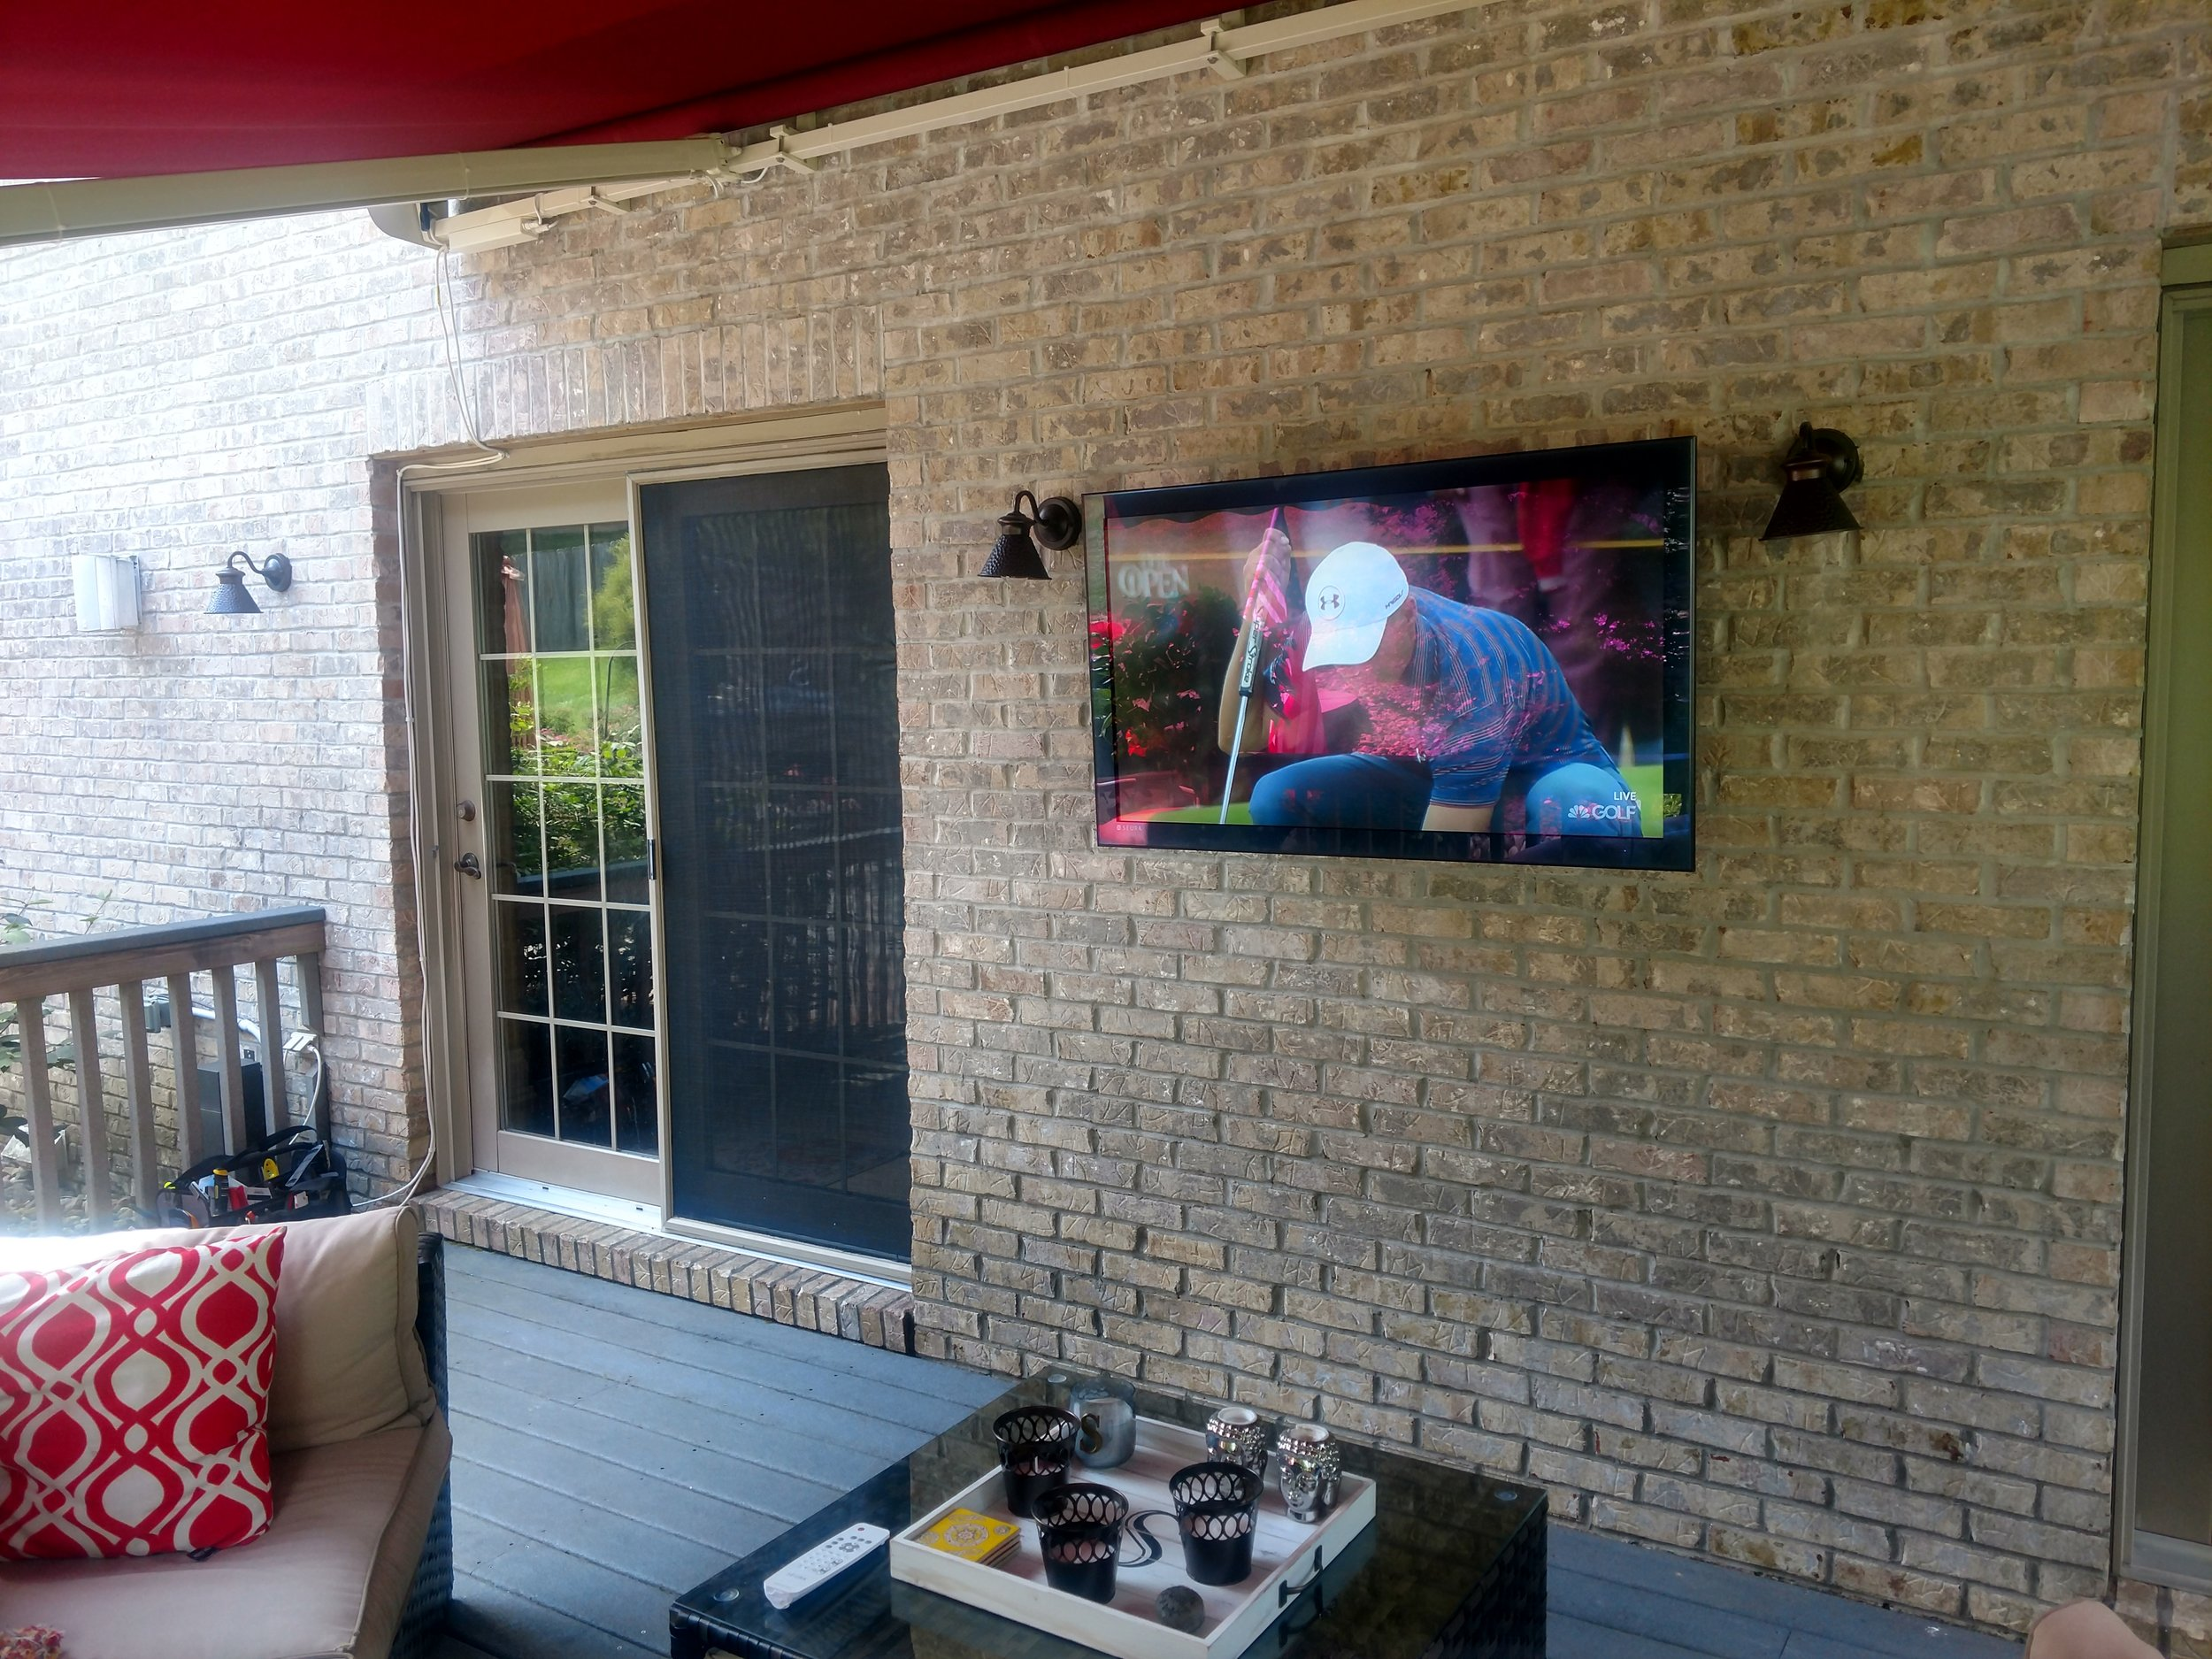 Outdoor TV/Audio - Impress your friends and family with an outdoor entertaining experience that Cinemagic will help you design. Learn more